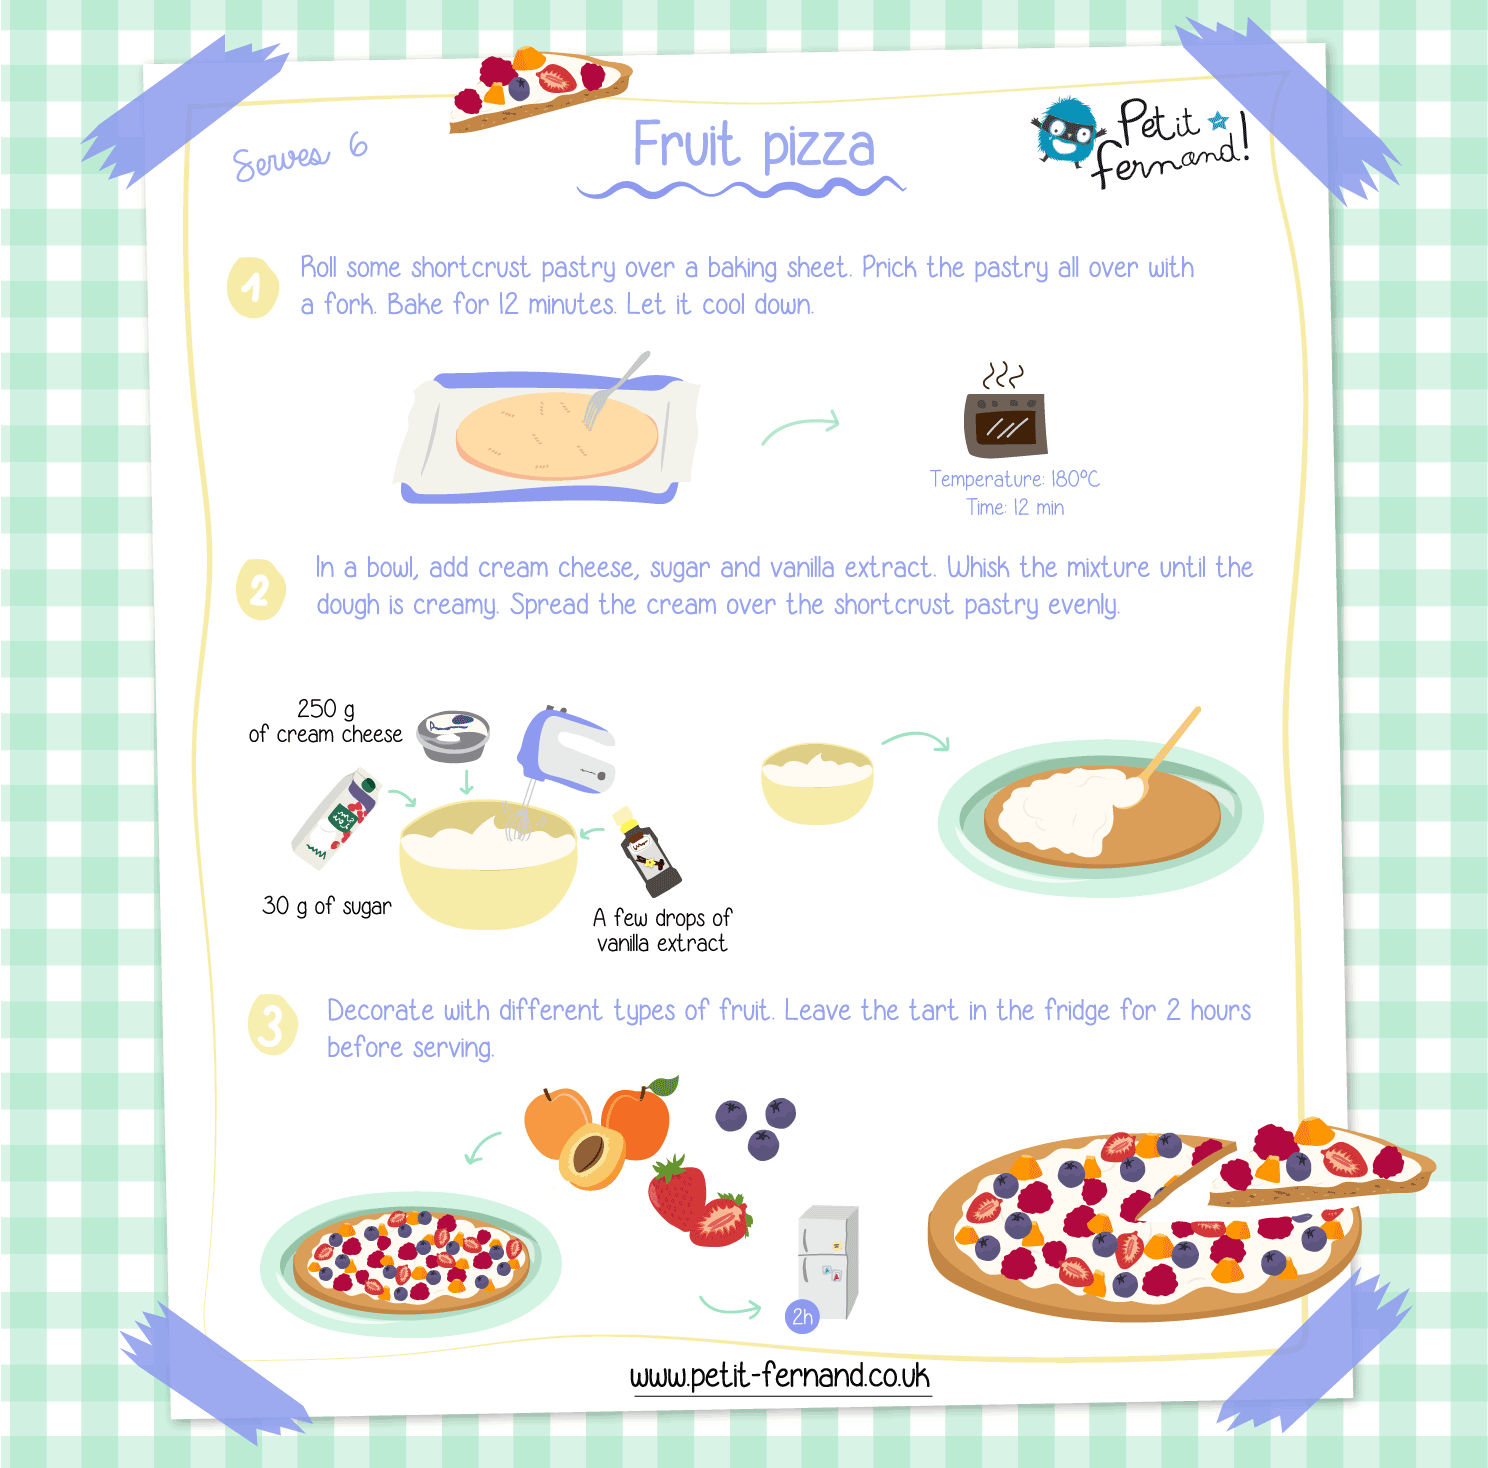 Follow the recipe to make a delicious fruit pizza, a modern version of the classic fruit tart